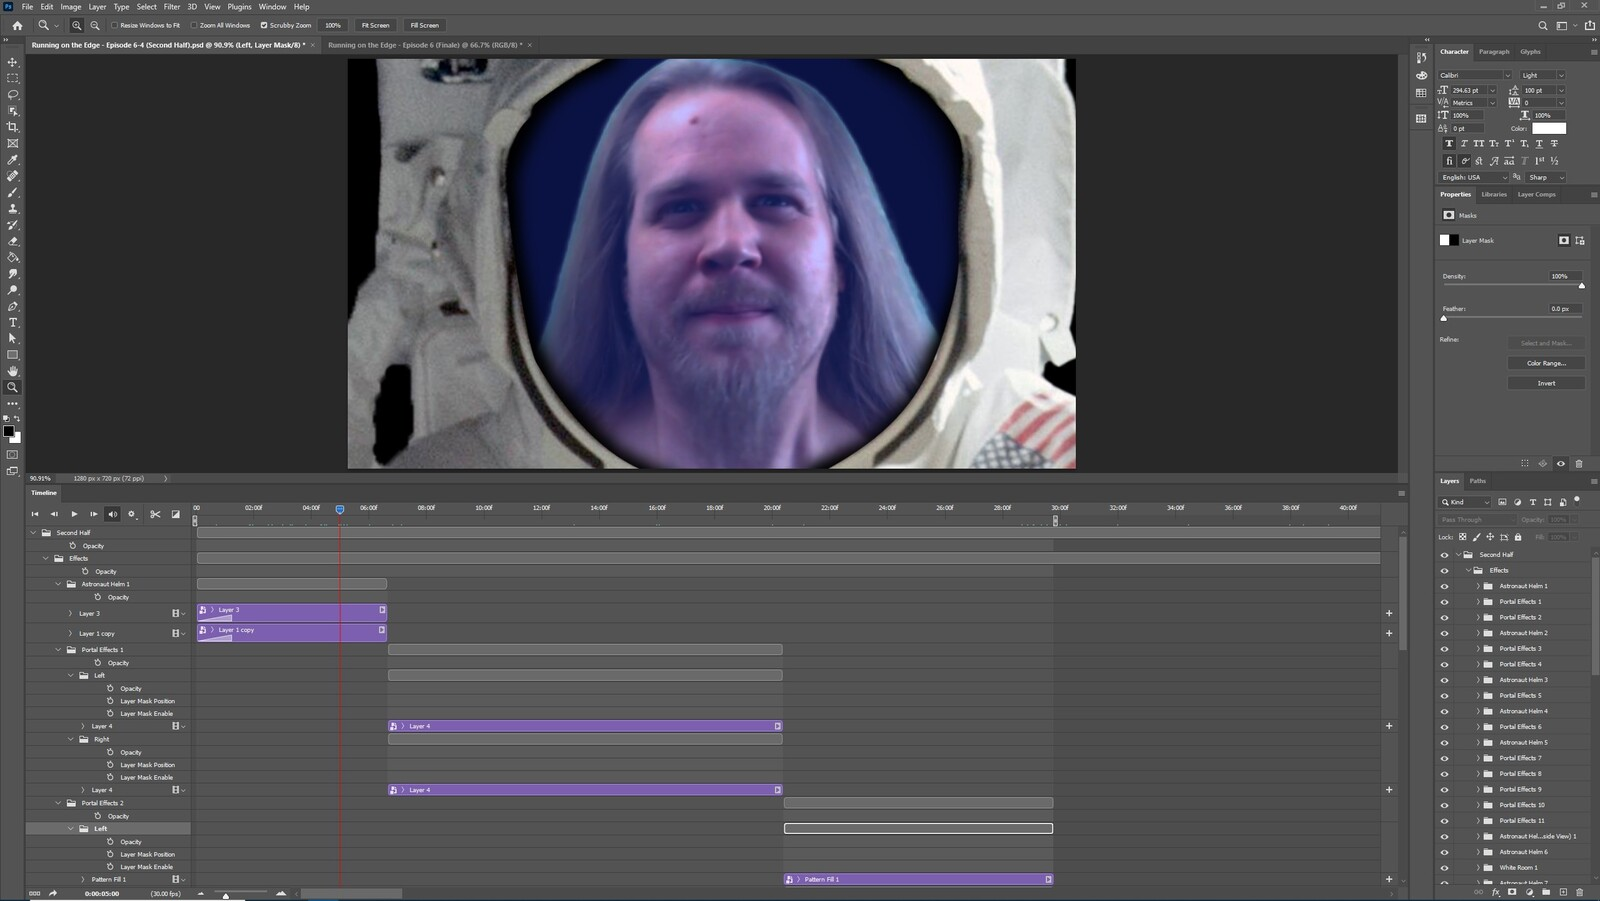 """The """"2020: A Time Oddity, Part 1"""" visual effect within Photoshop video editor"""